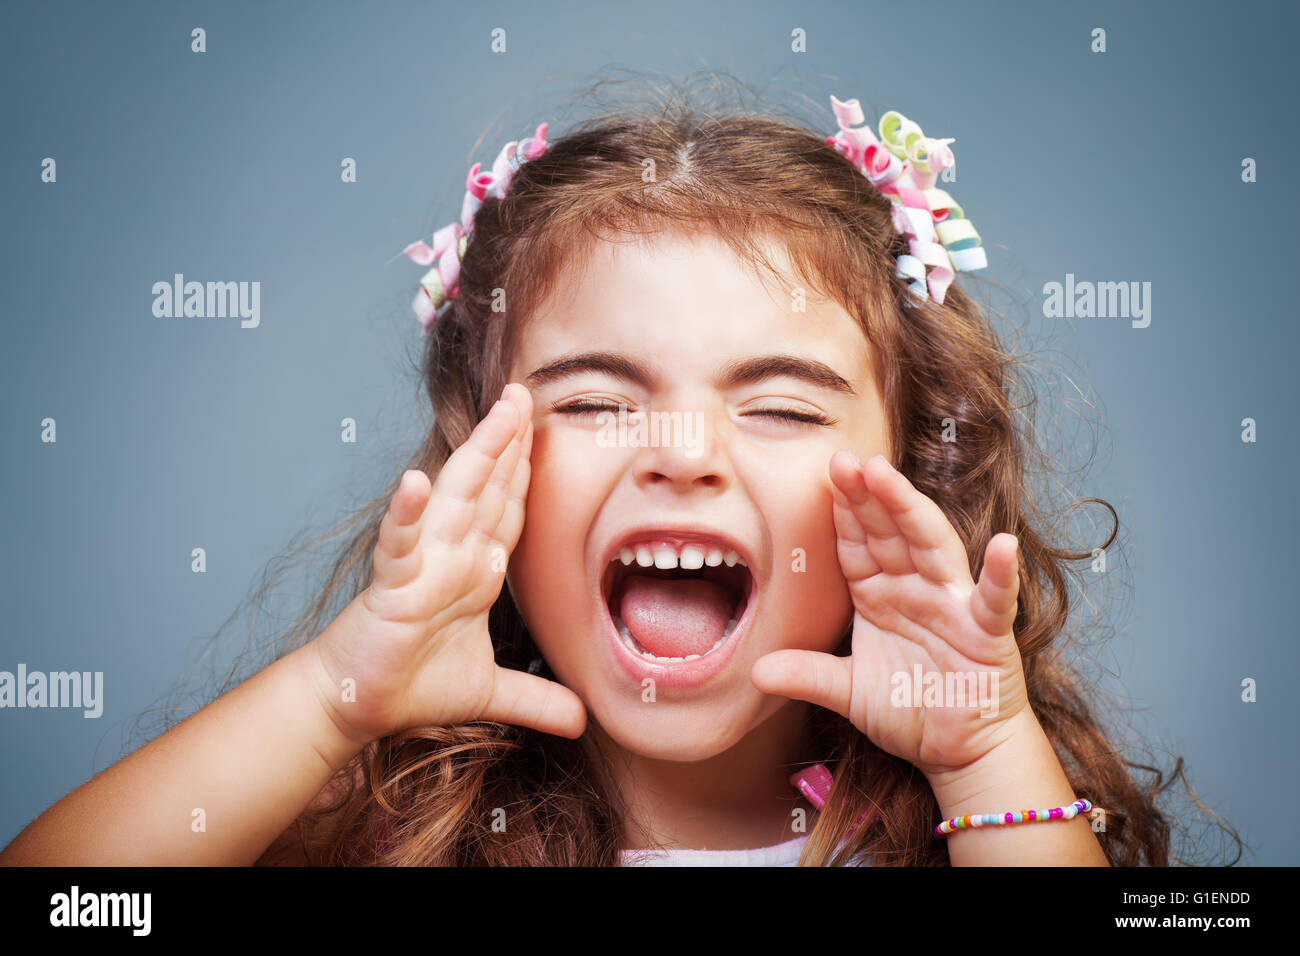 Portrait of a cute little baby girl screaming, naughty child yelling, expressing emotions, playful child rave about Stock Photo